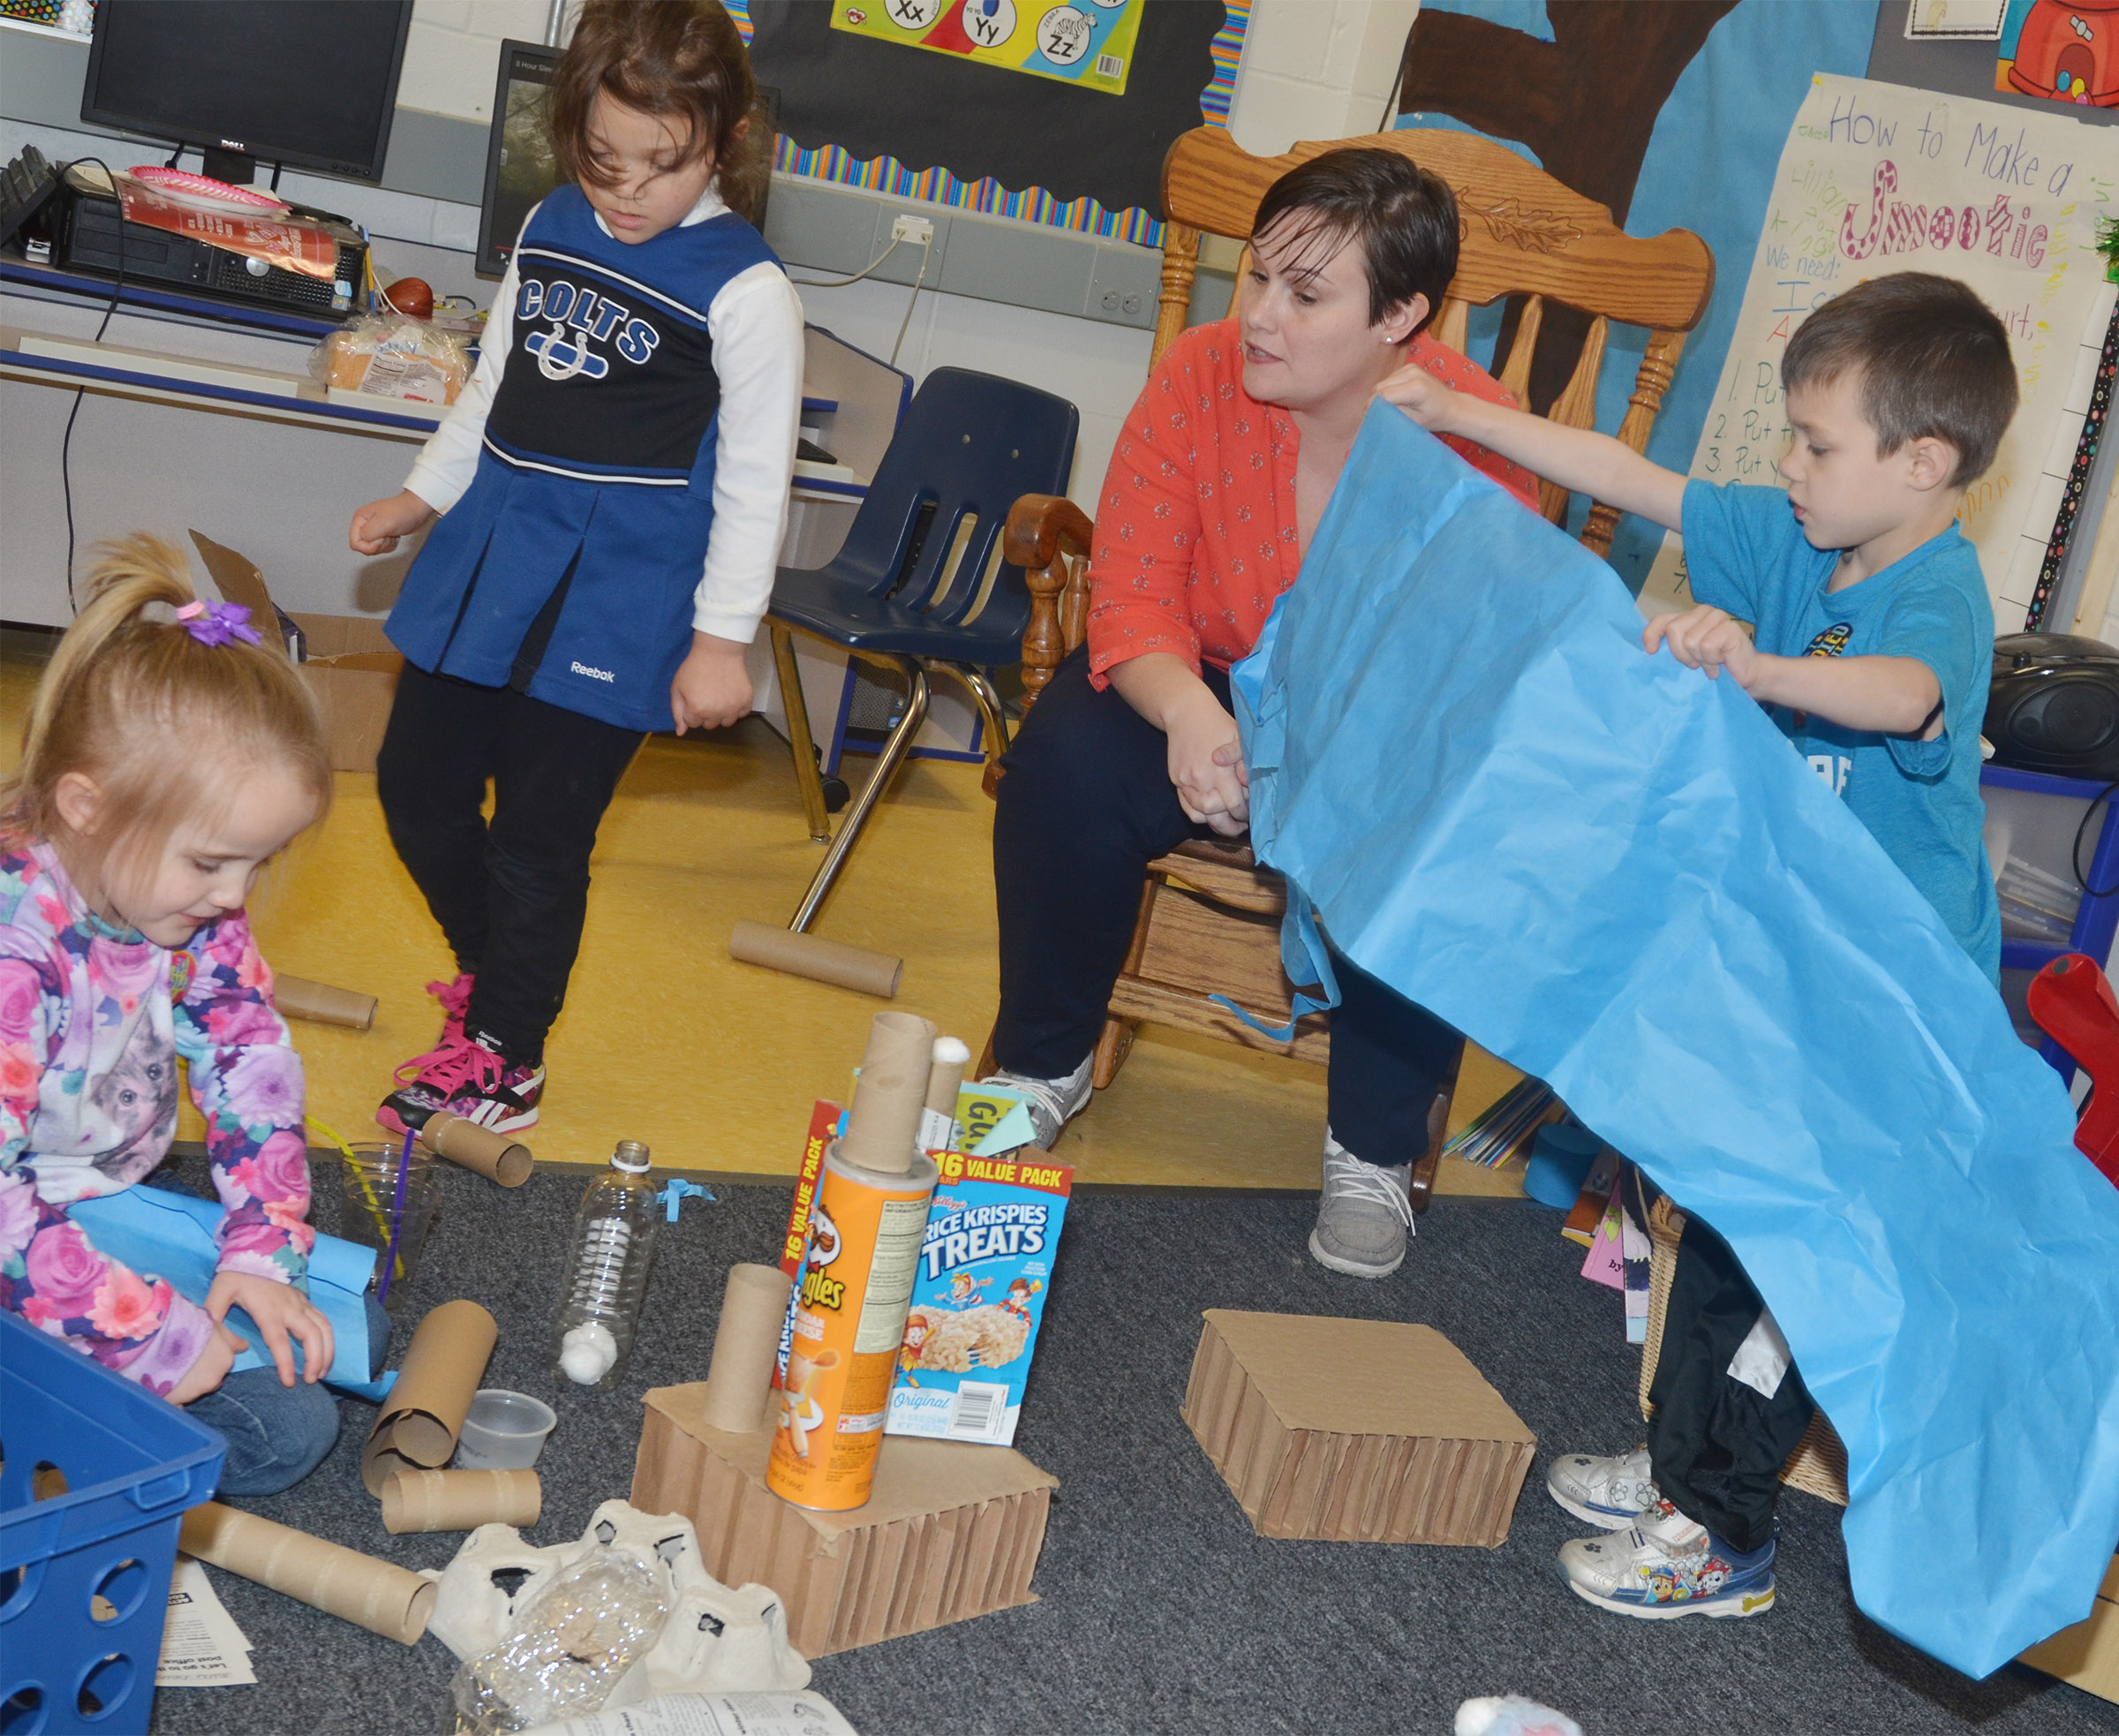 CES Wings Express Director Amanda Barnett watches as preschool students, from left, Trinity Dye, Addisyn Taylor and Levi Ritchie use everyday objects to build.